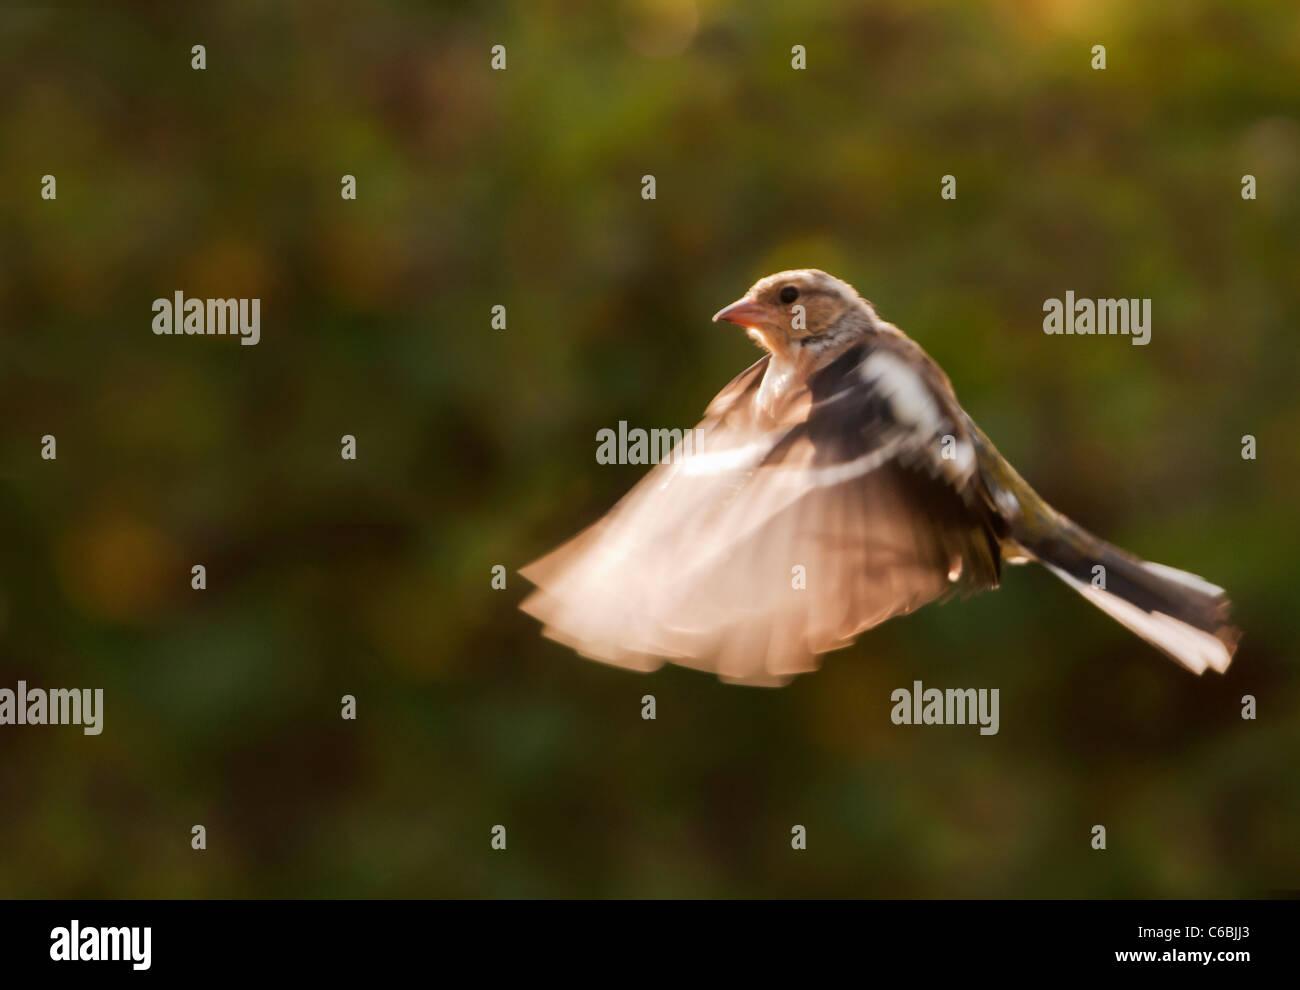 Female Chaffinch Fringilla coelebs in flight, Warwickshire - Stock Image